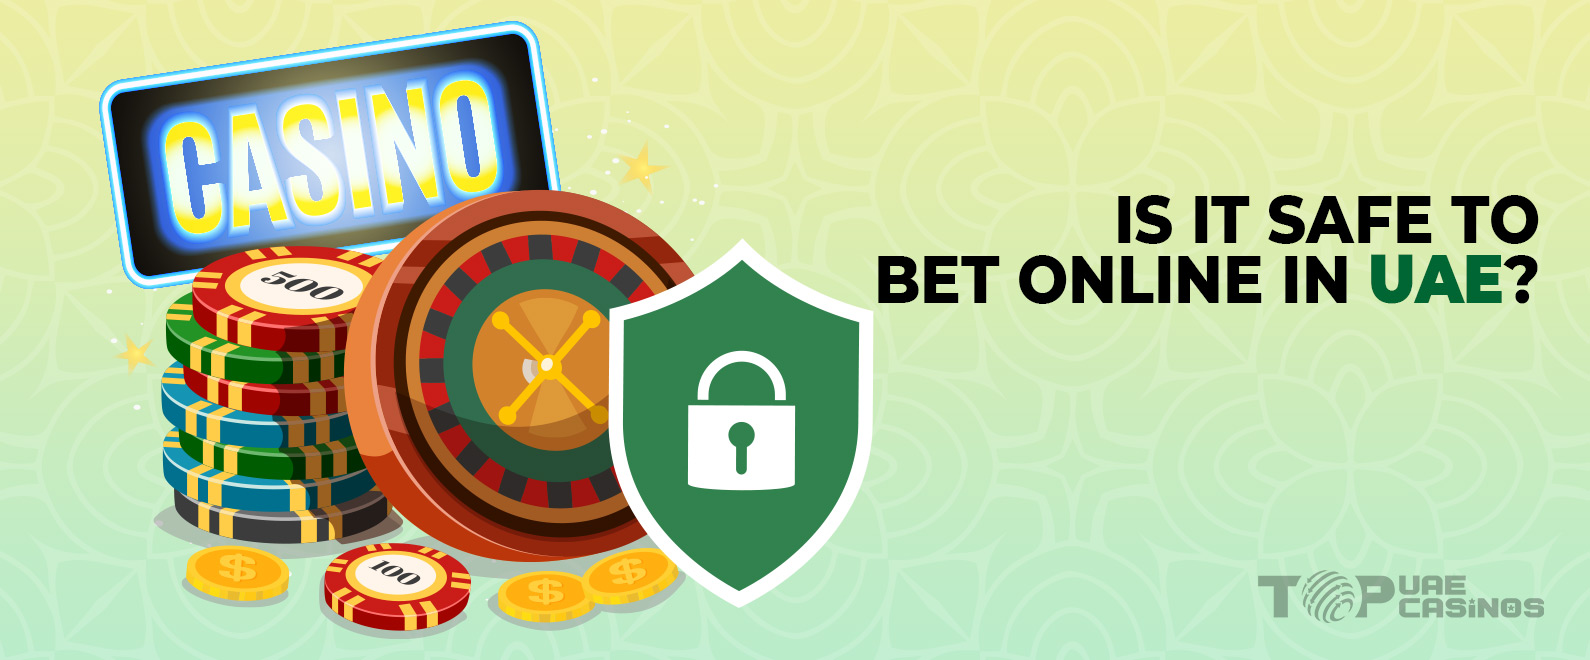 uae betting sites are safe